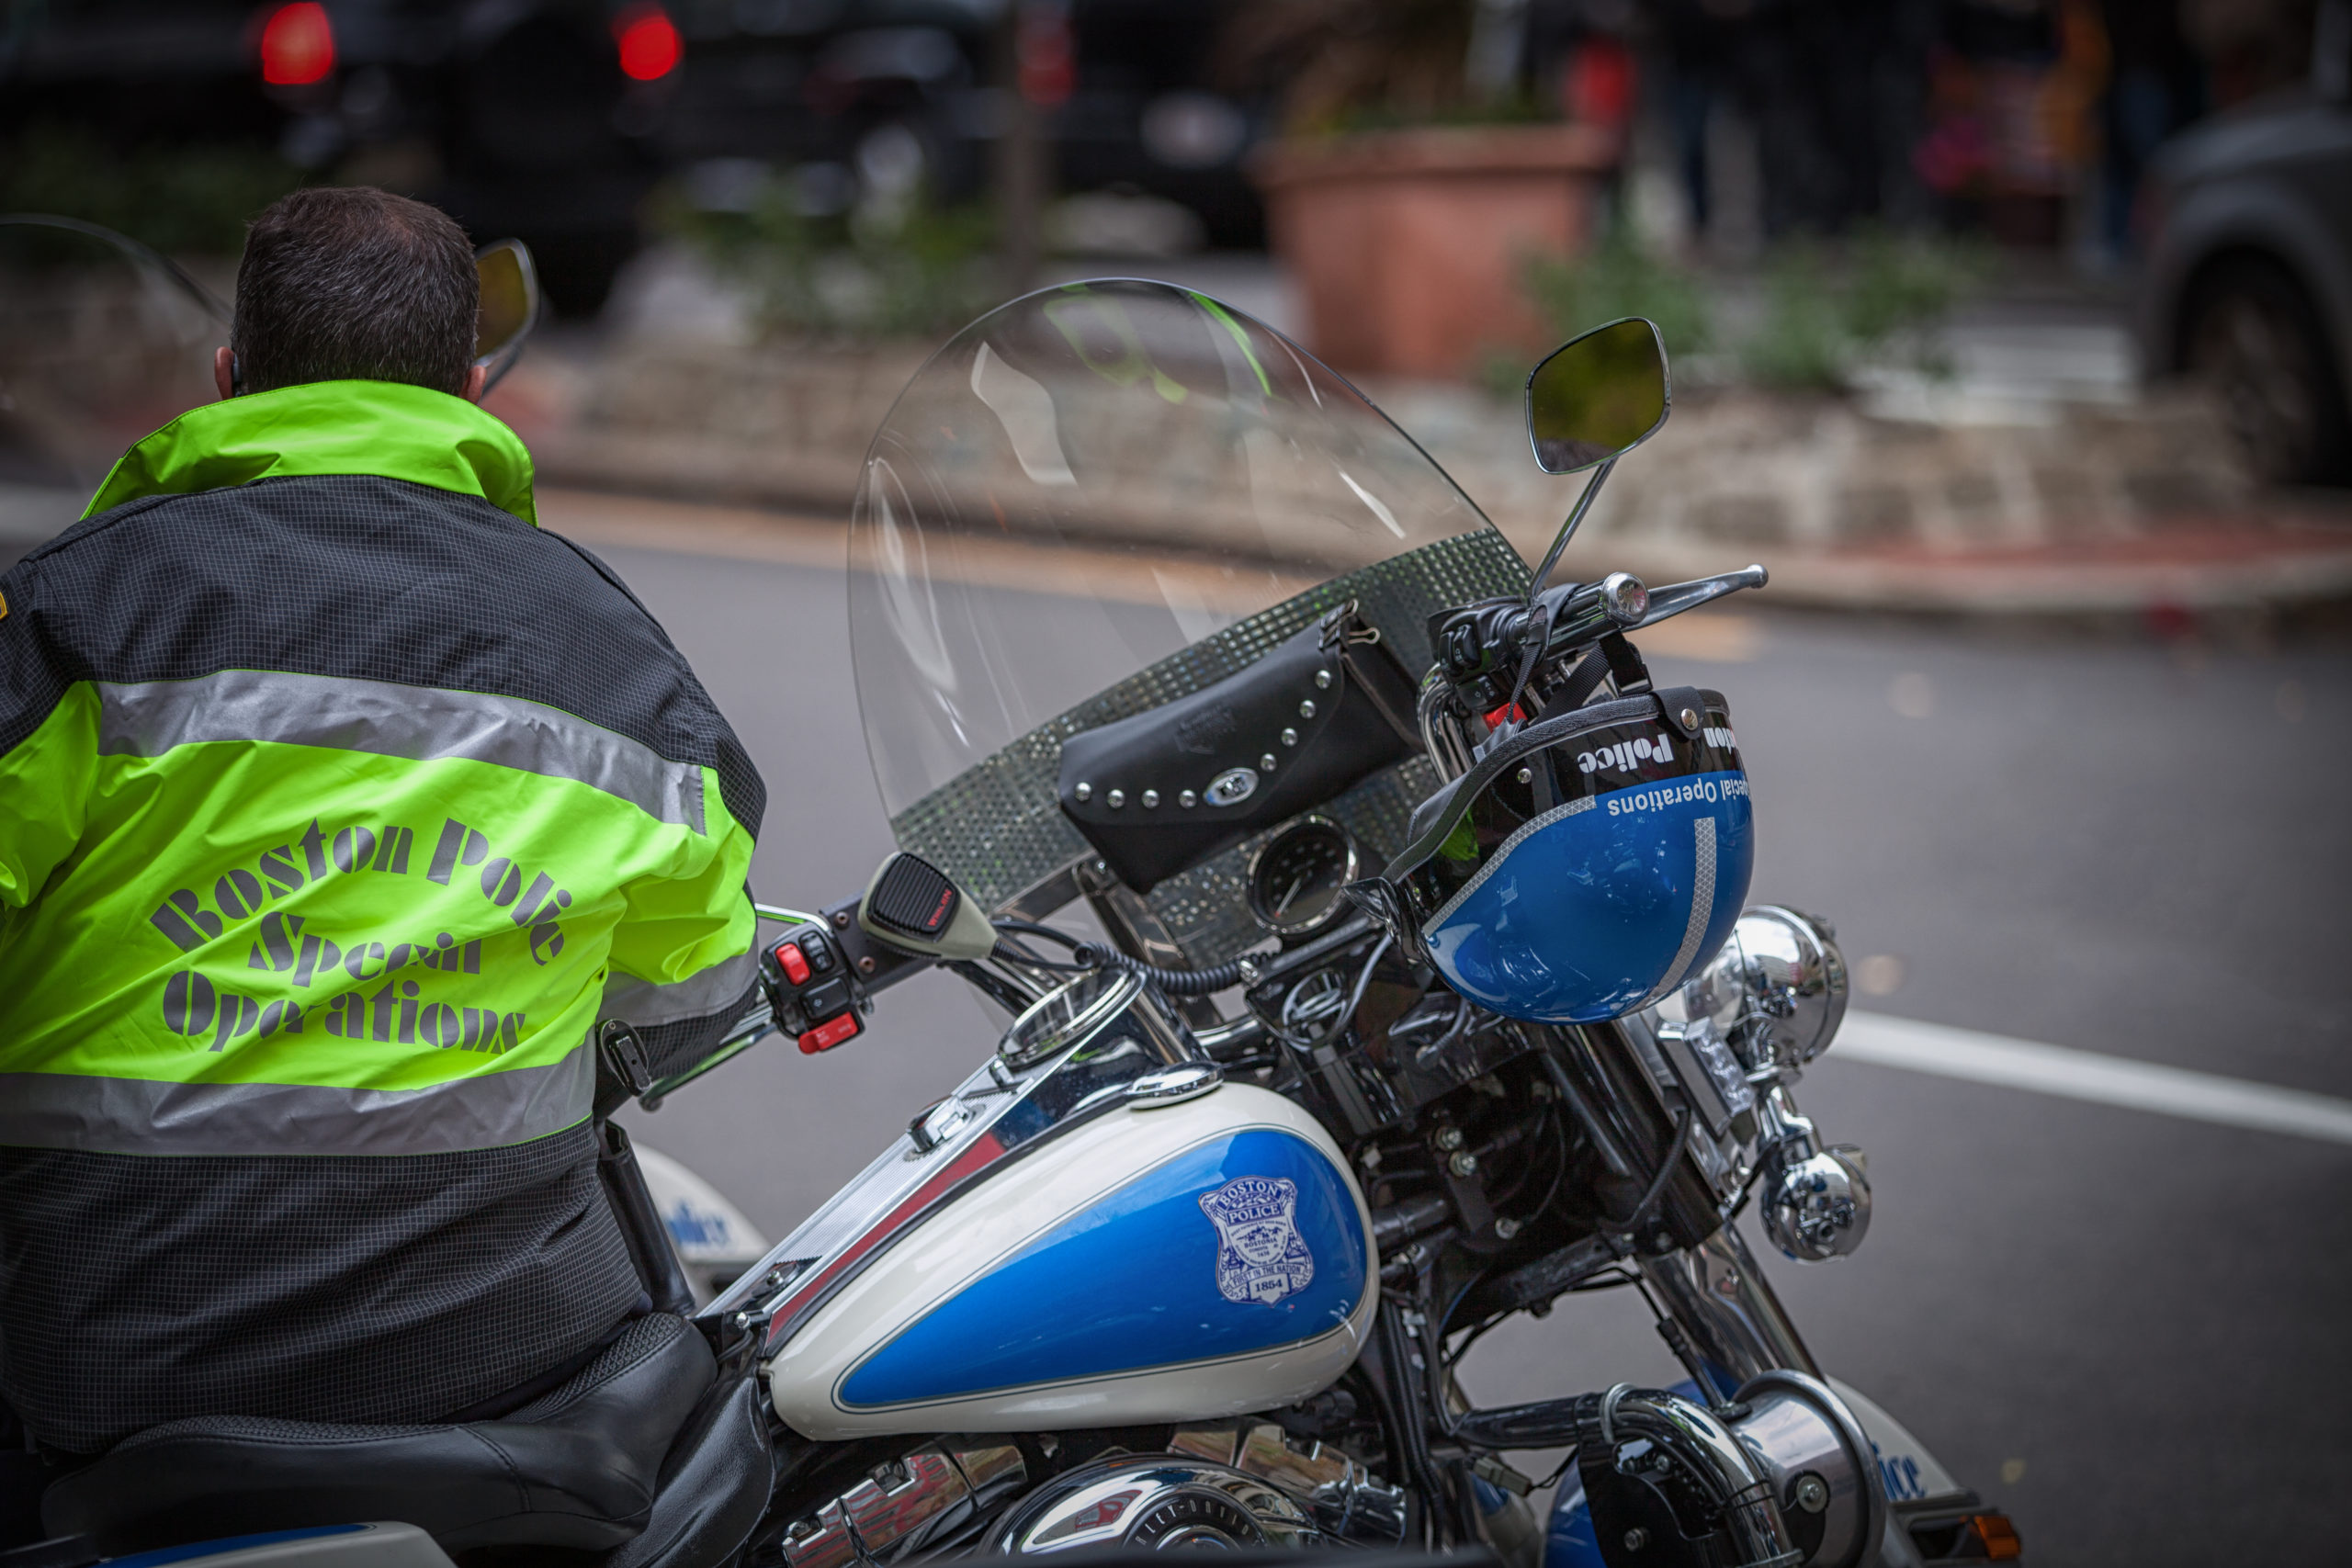 A Boston Police Department Special Operations officer who is a member of the department's motorcycle unit. (Bruce Peter/Shutterstock)